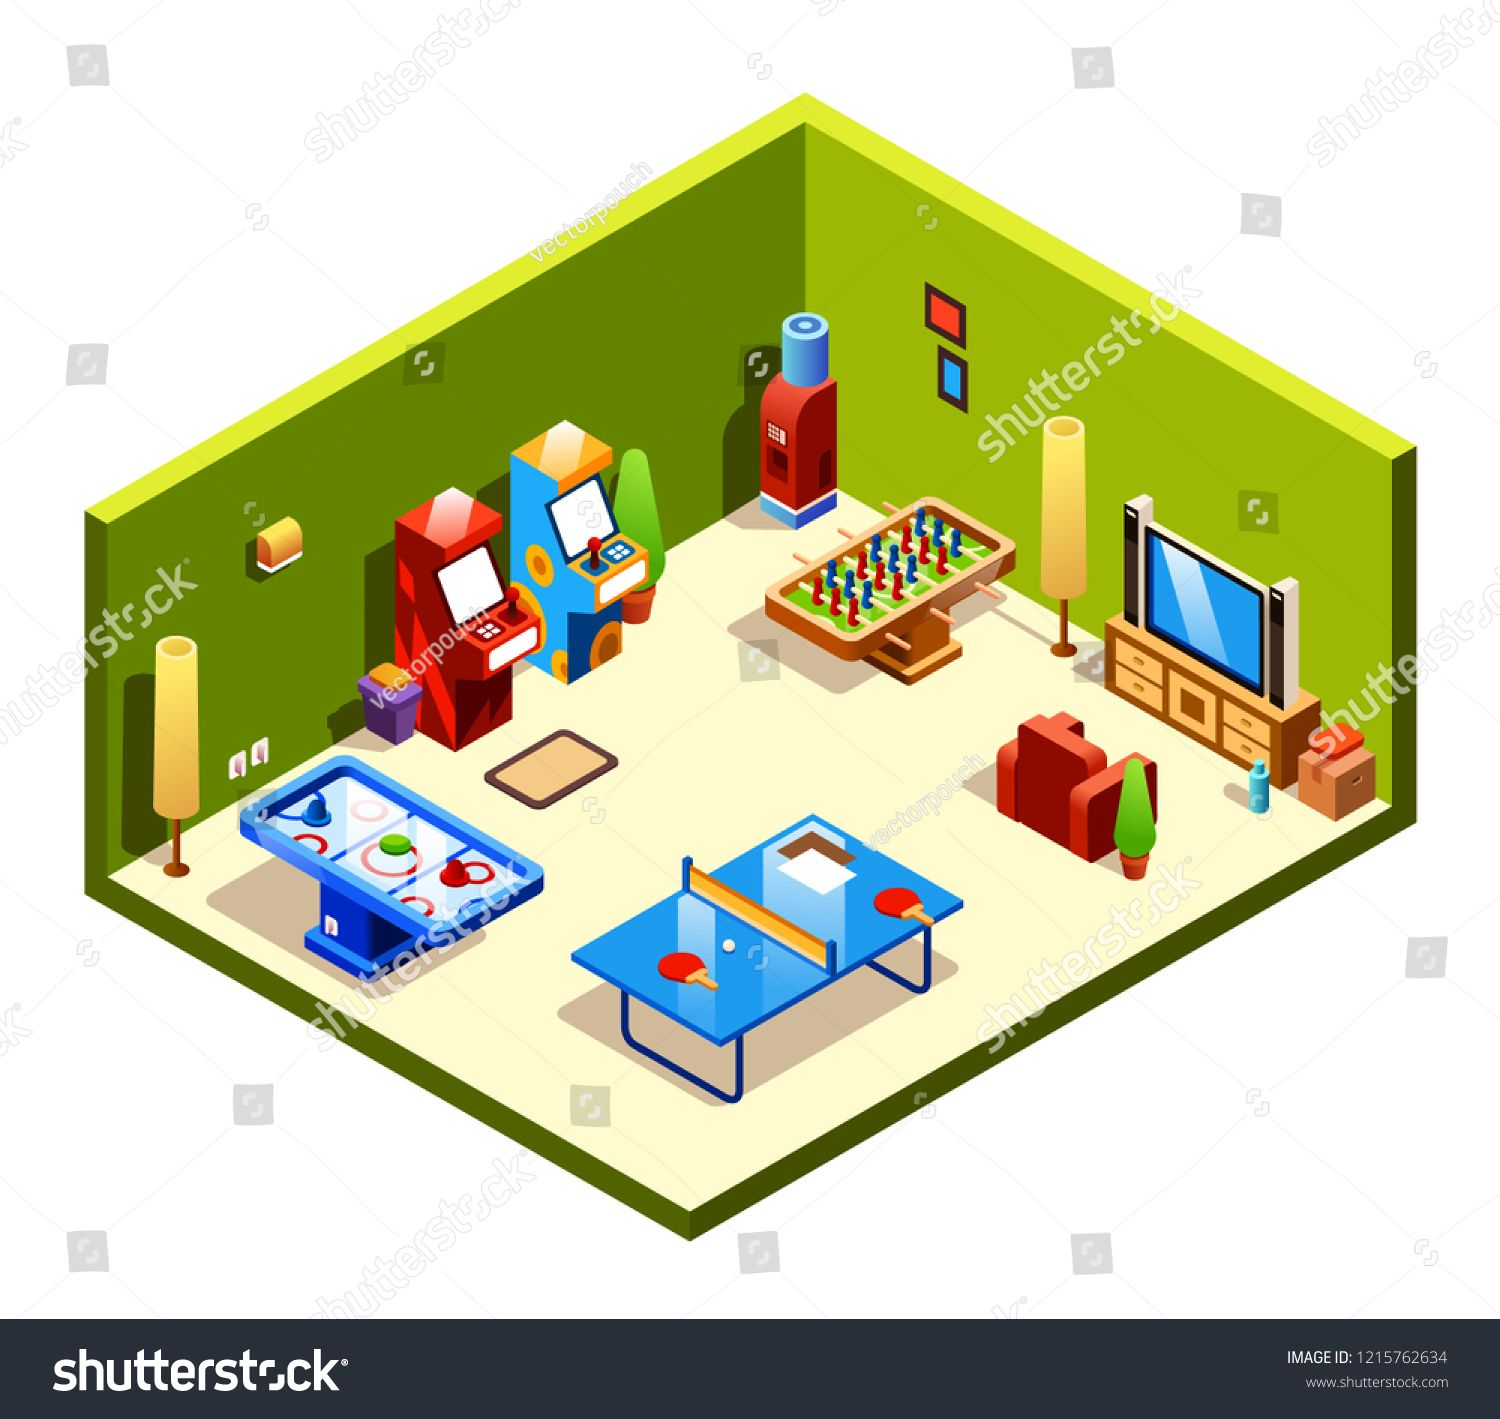 Isometric Cross Section Recreation Room With Entertainment And Amusements Table Tennis Or Ping Pong Foosball An Entertaining Kids Playmat Entertainment Room